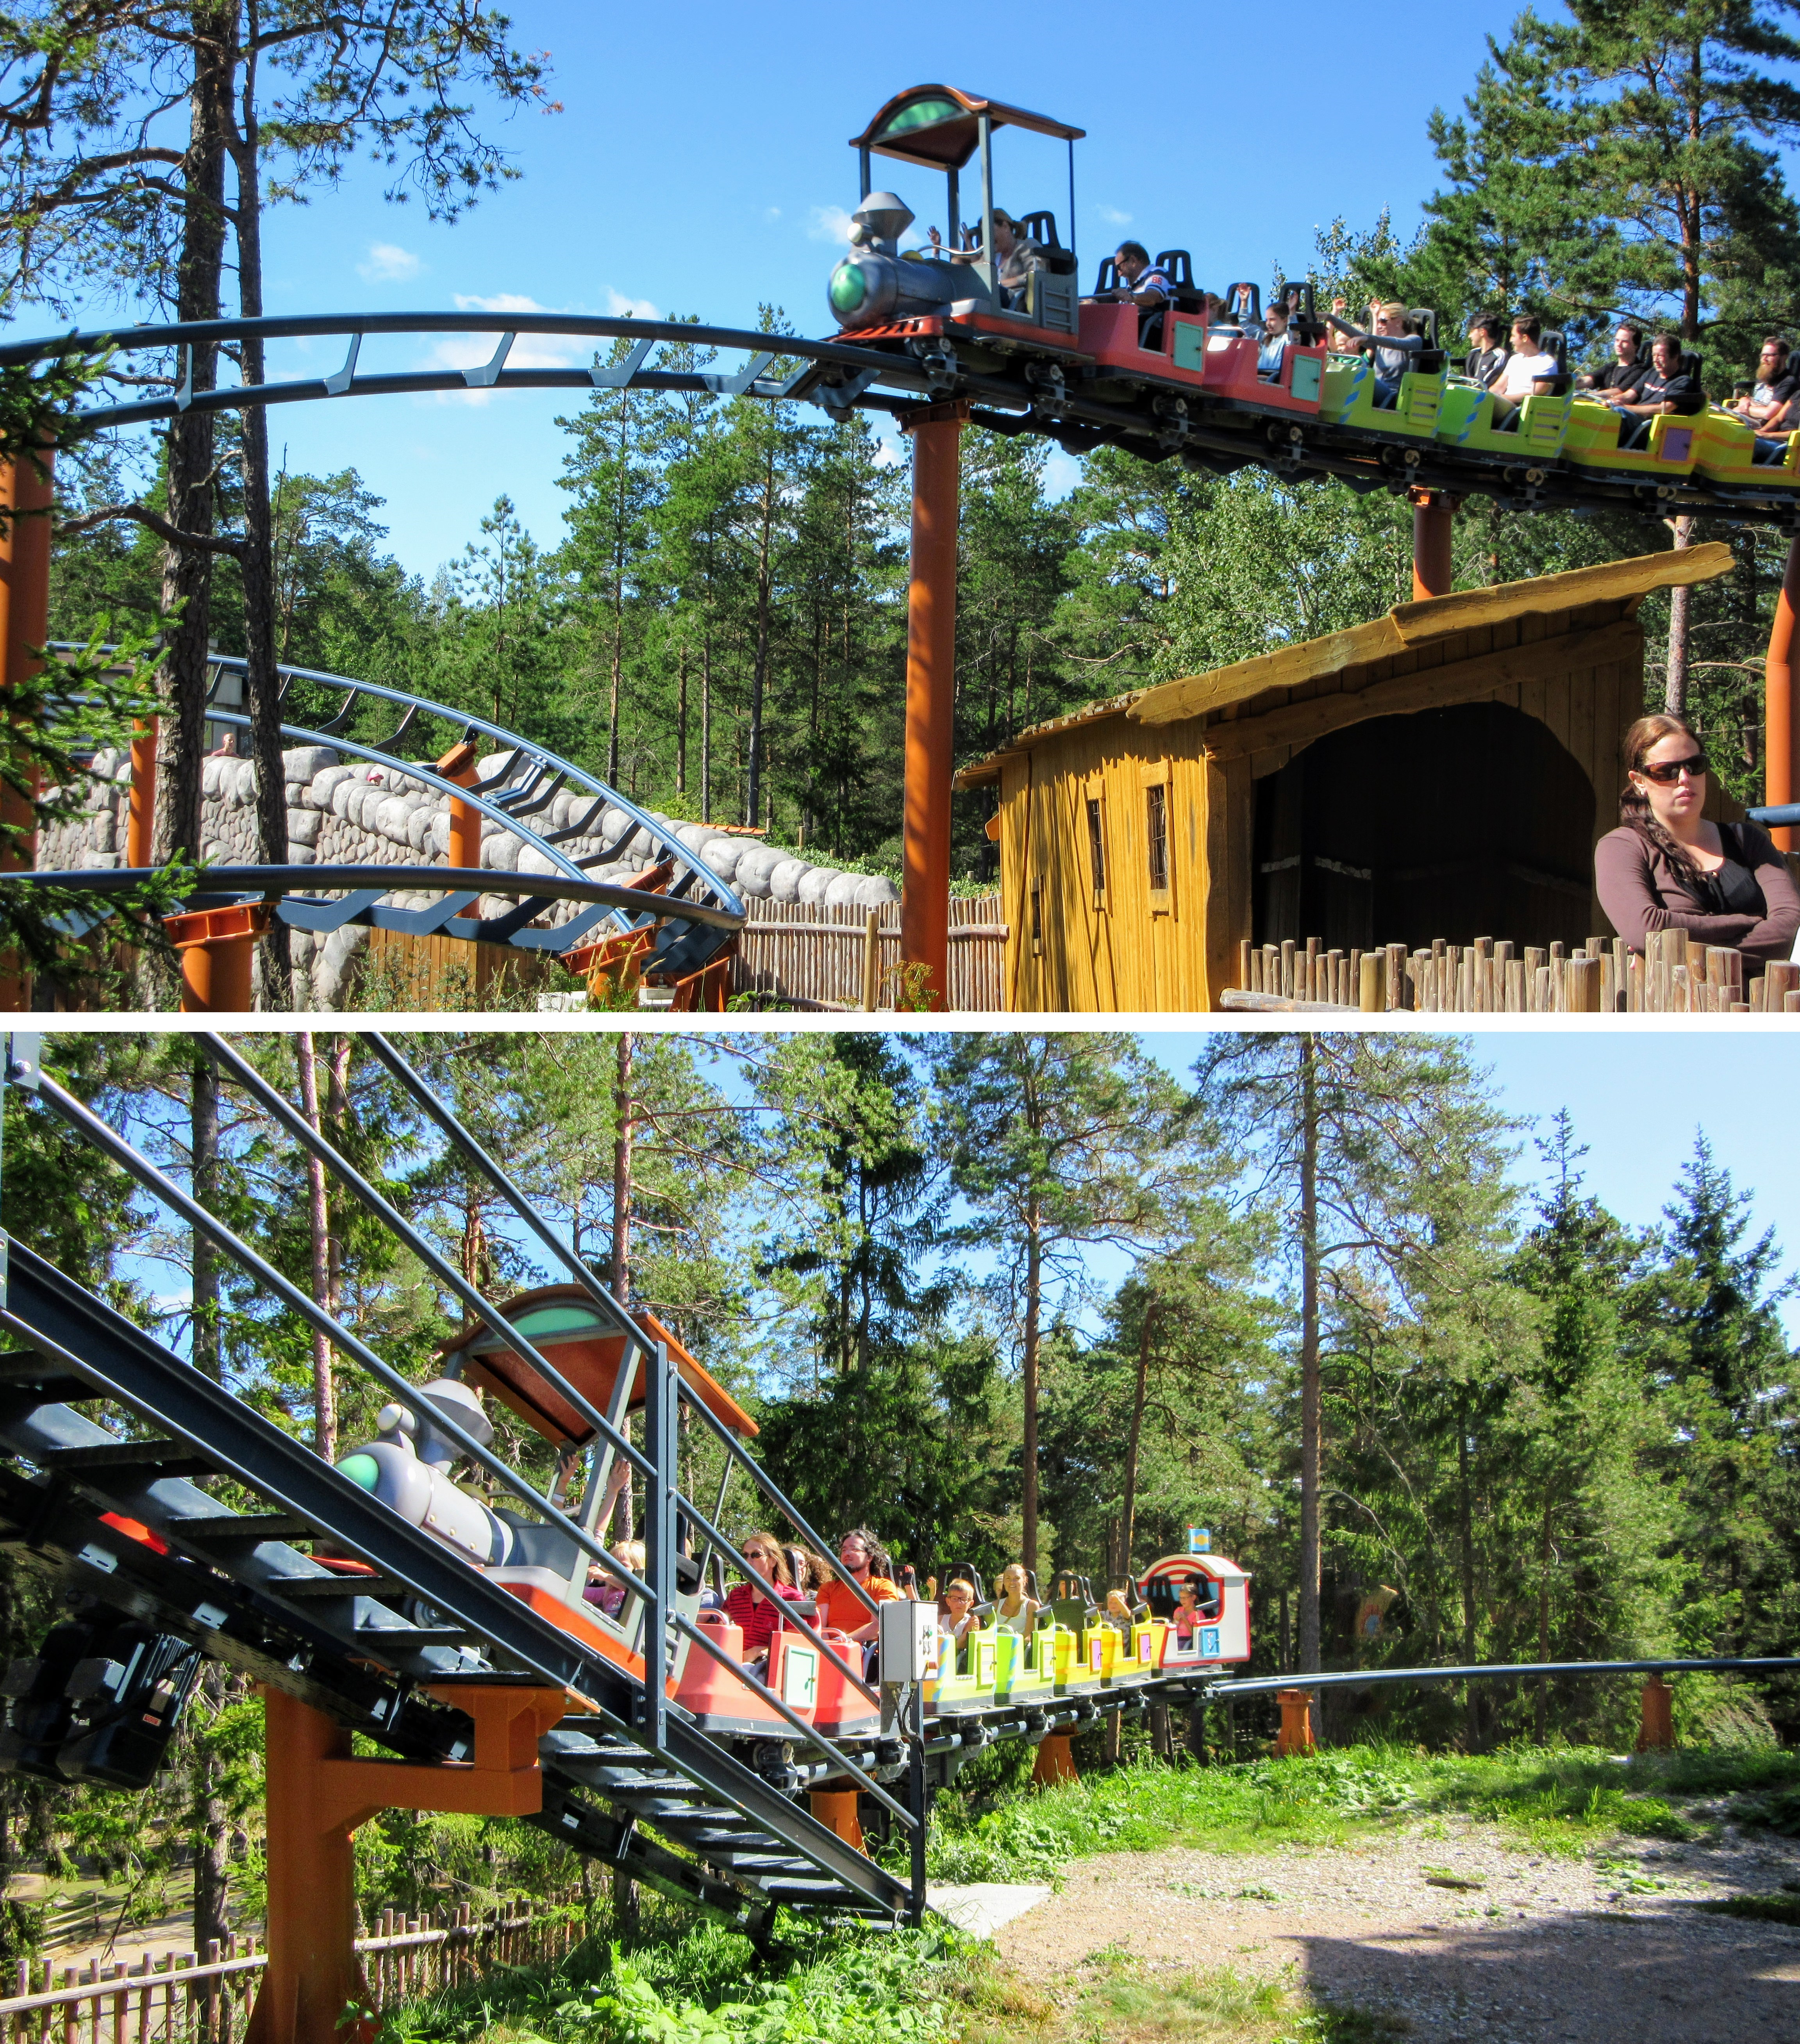 Godiståget coaster at Kolmården Wildlife Park.